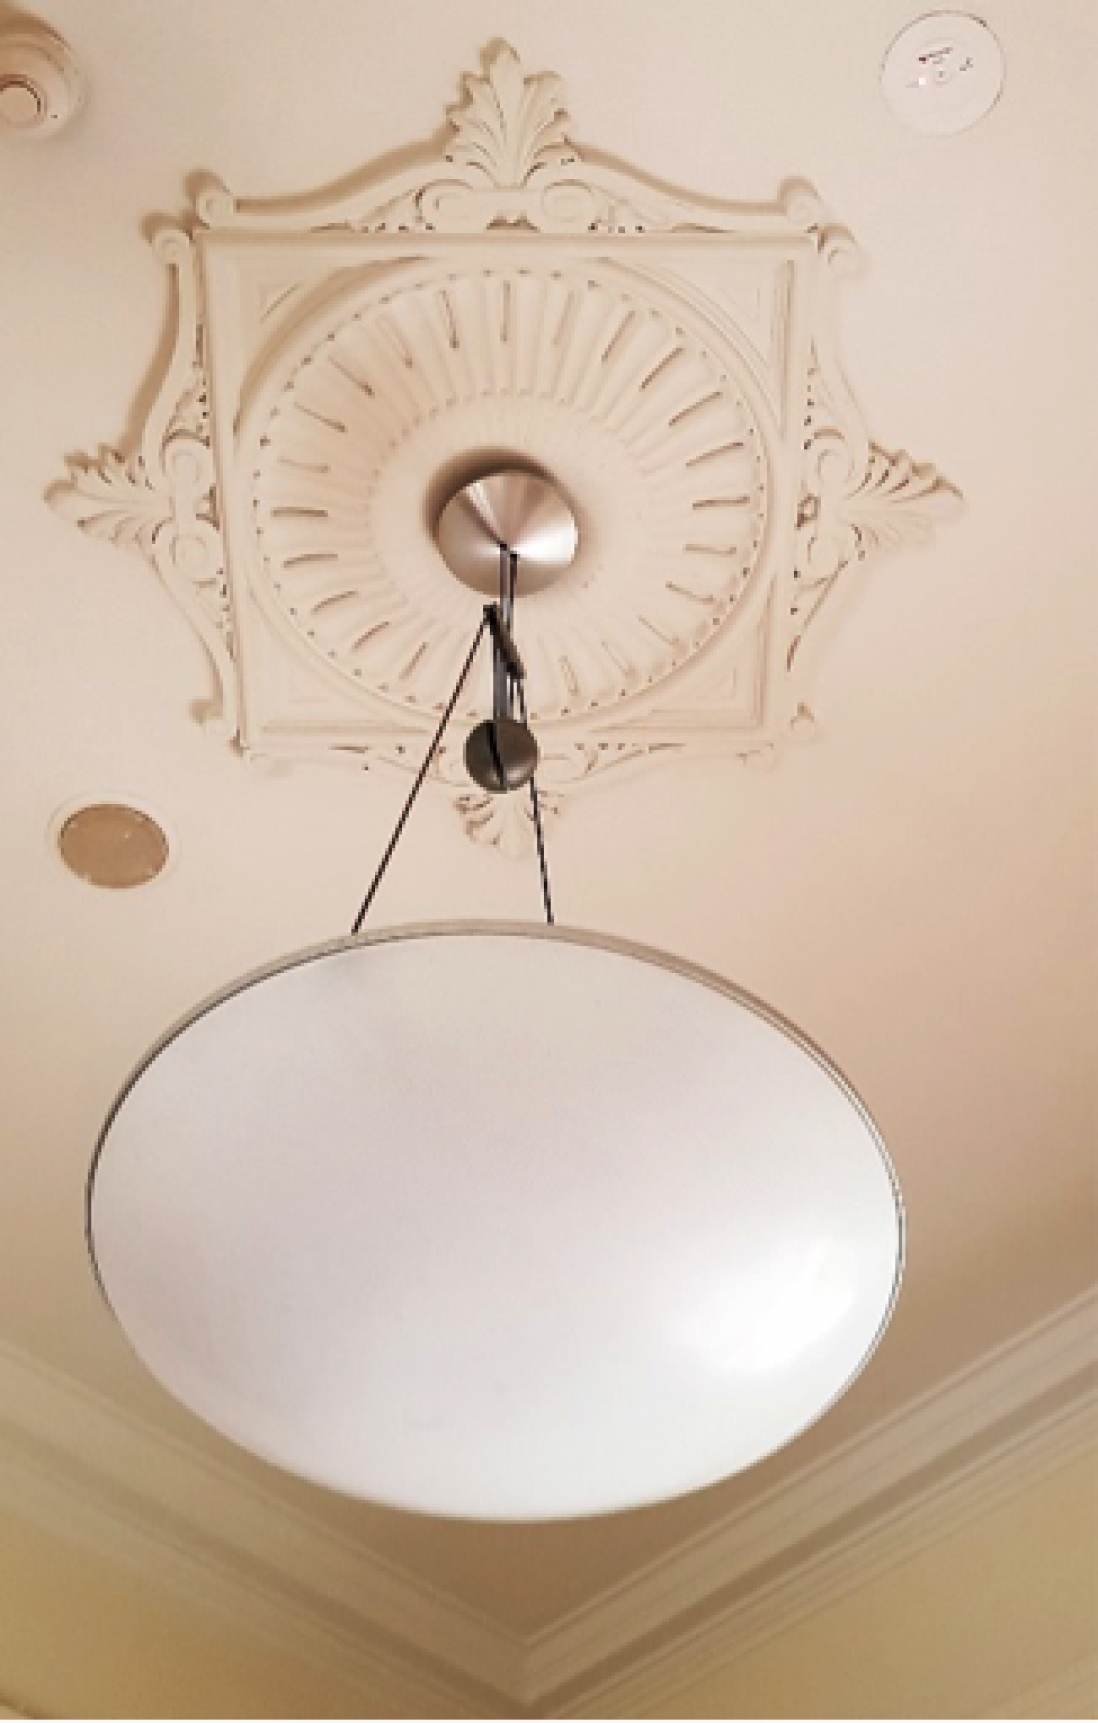 Image of the Celling rose at The mint. It features acanthus leaves in the motif and has the light fitting coming out of the centre of it.